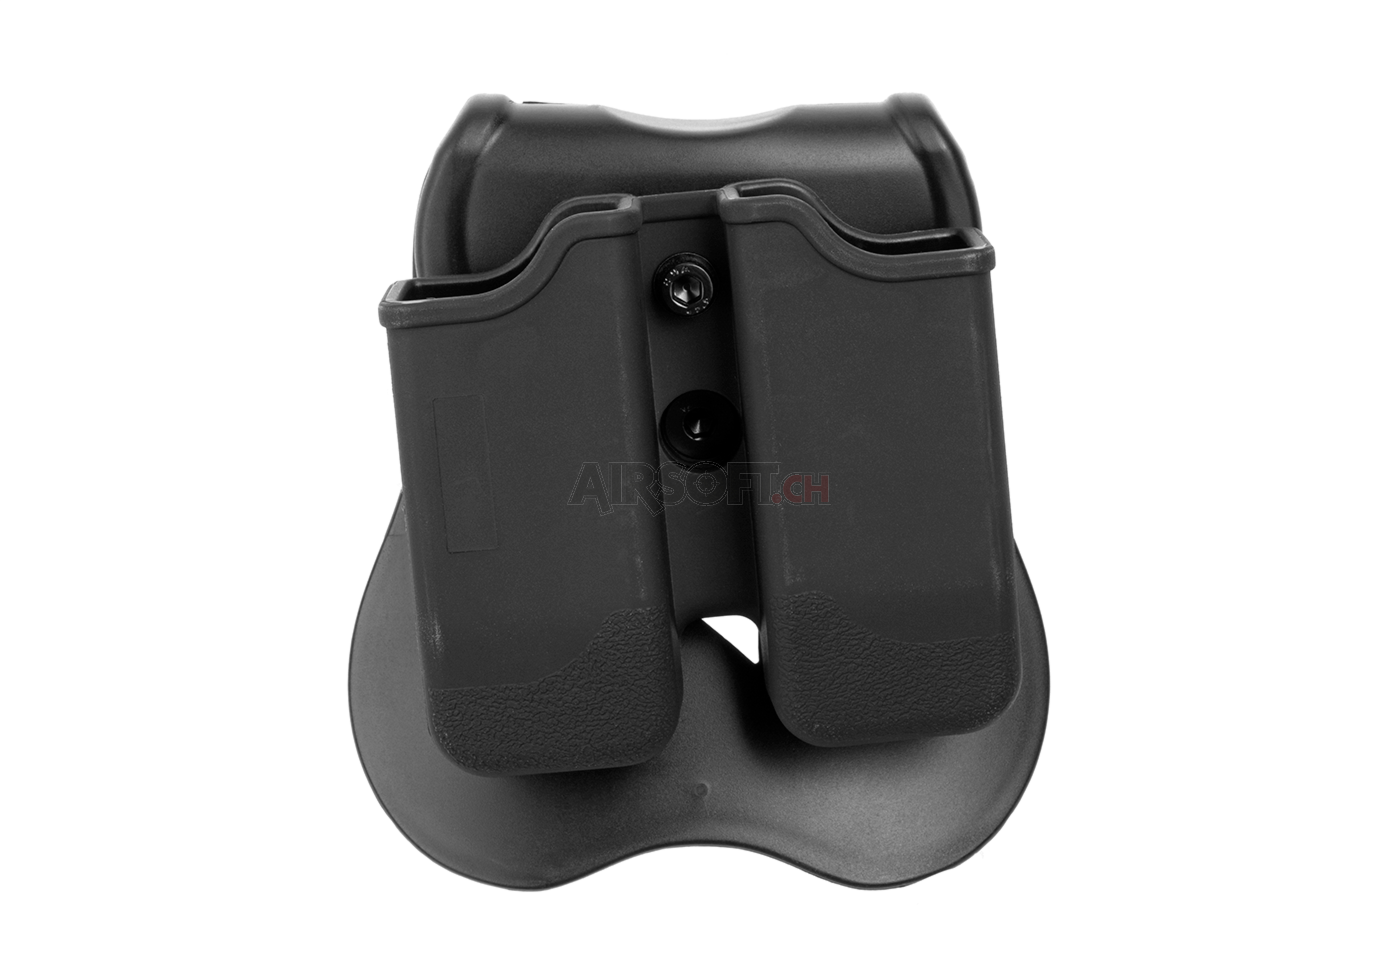 3baa2d6fb5d0 Double Mag Pouch for M9 / P226 / P99 Black (Cytac) - Accessories ...